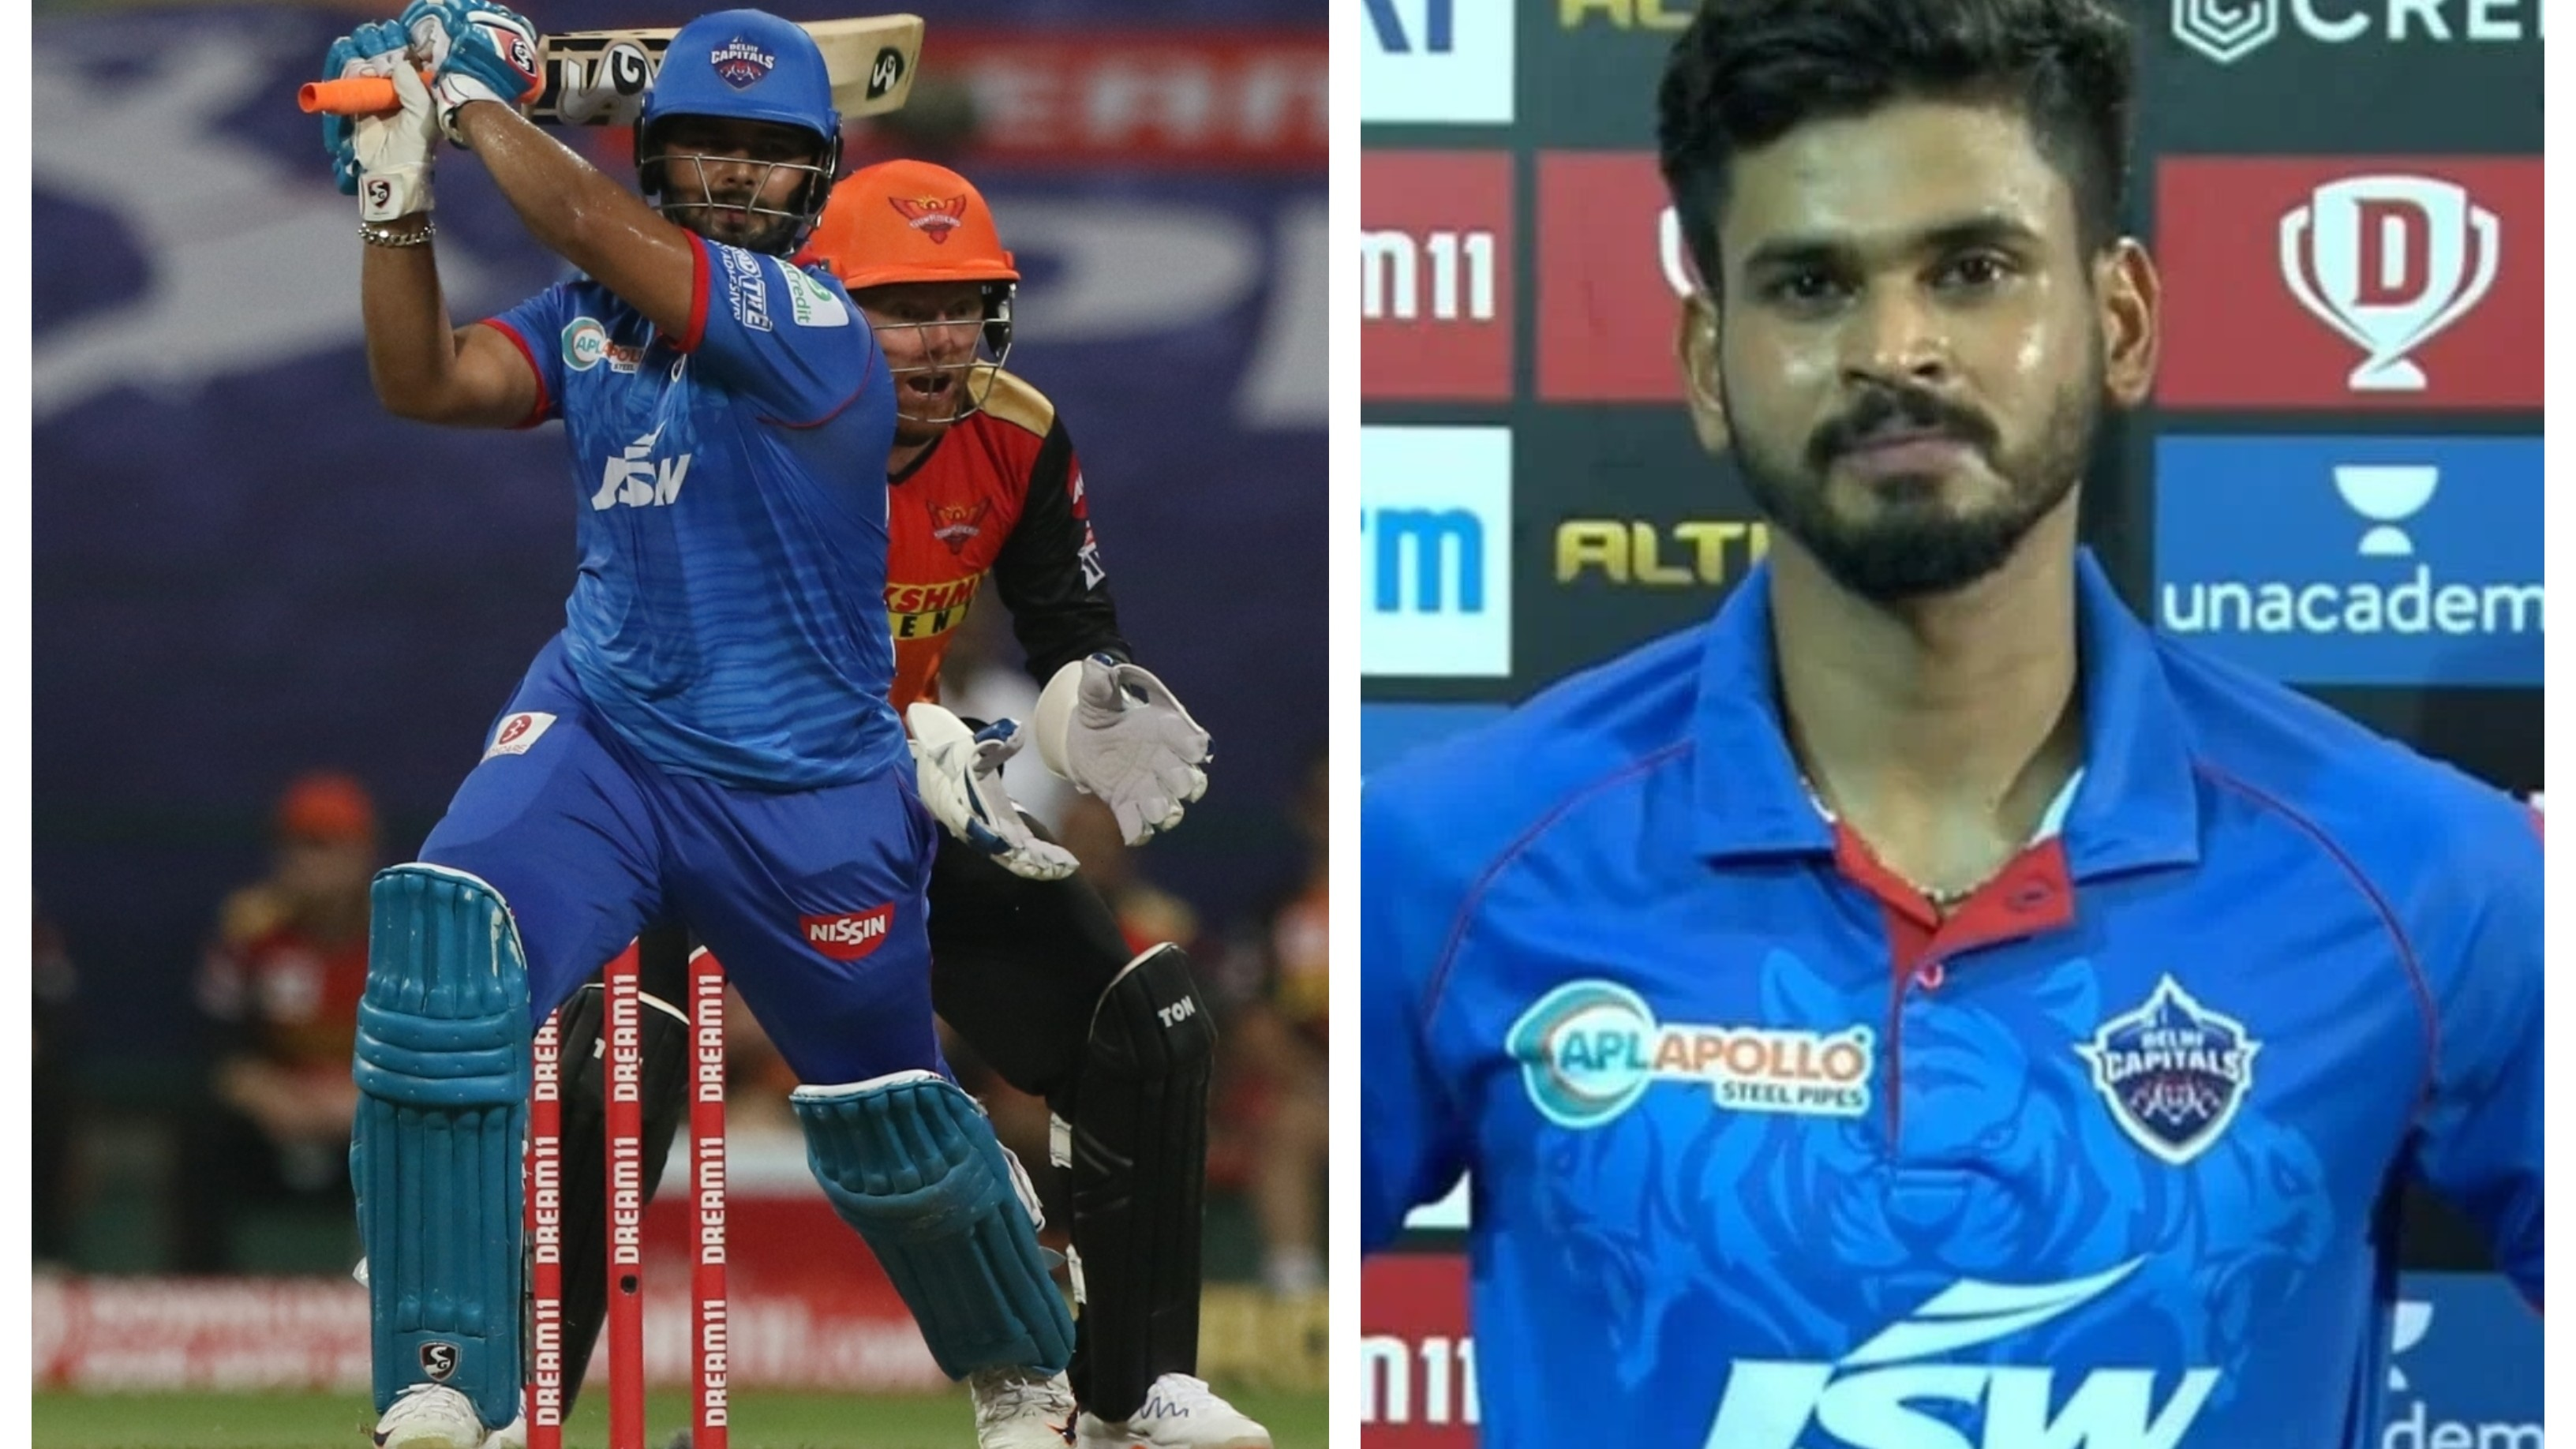 IPL 2020: Injured Rishabh Pant to miss the action for at least a week, confirms Shreyas Iyer